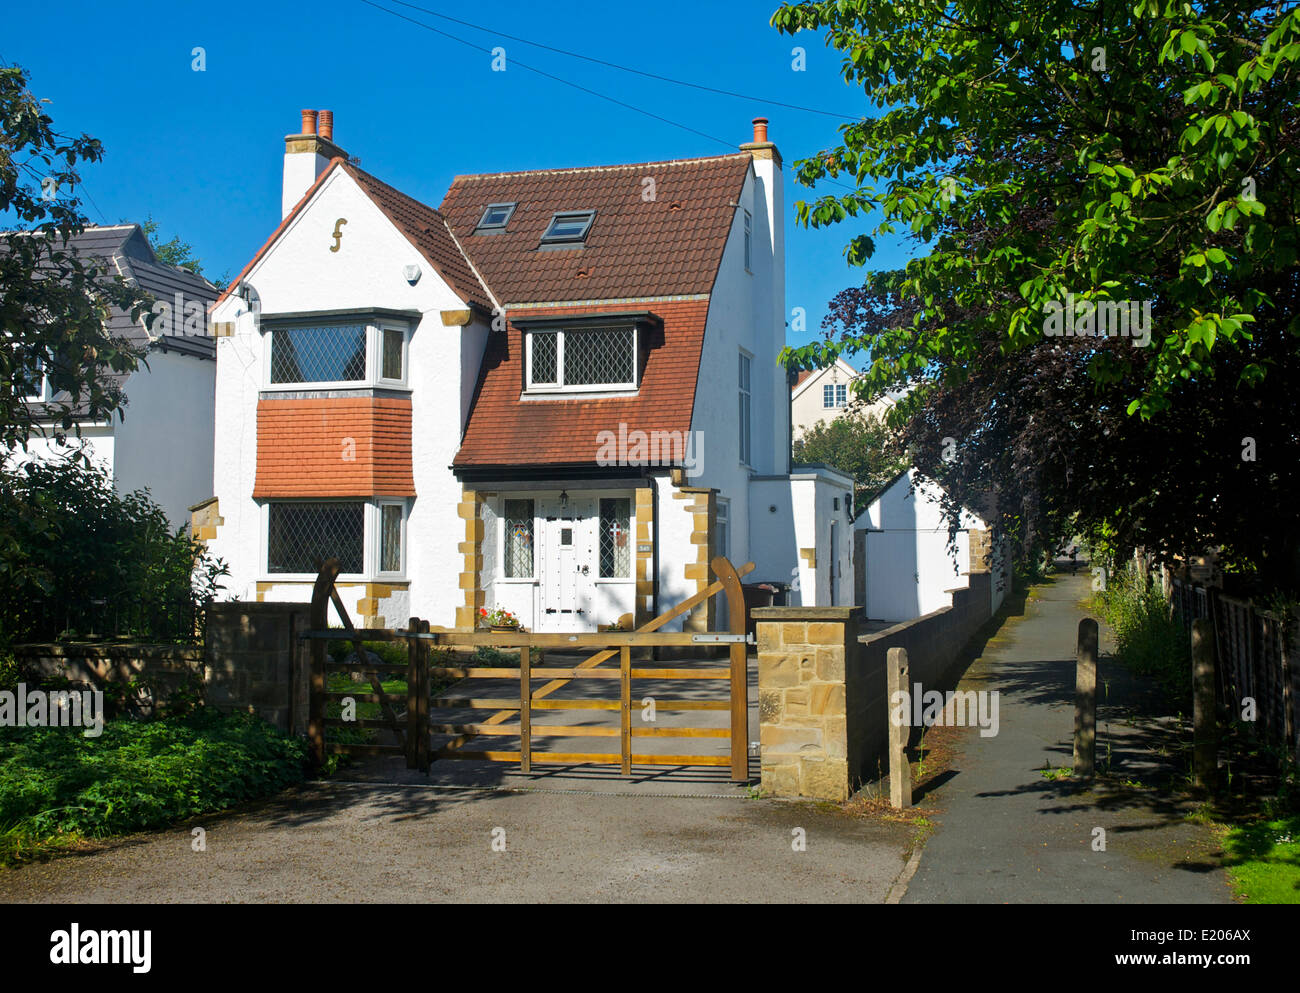 Detached house in Adel, near Leeds, West Yorkshire, England UK - Stock Image